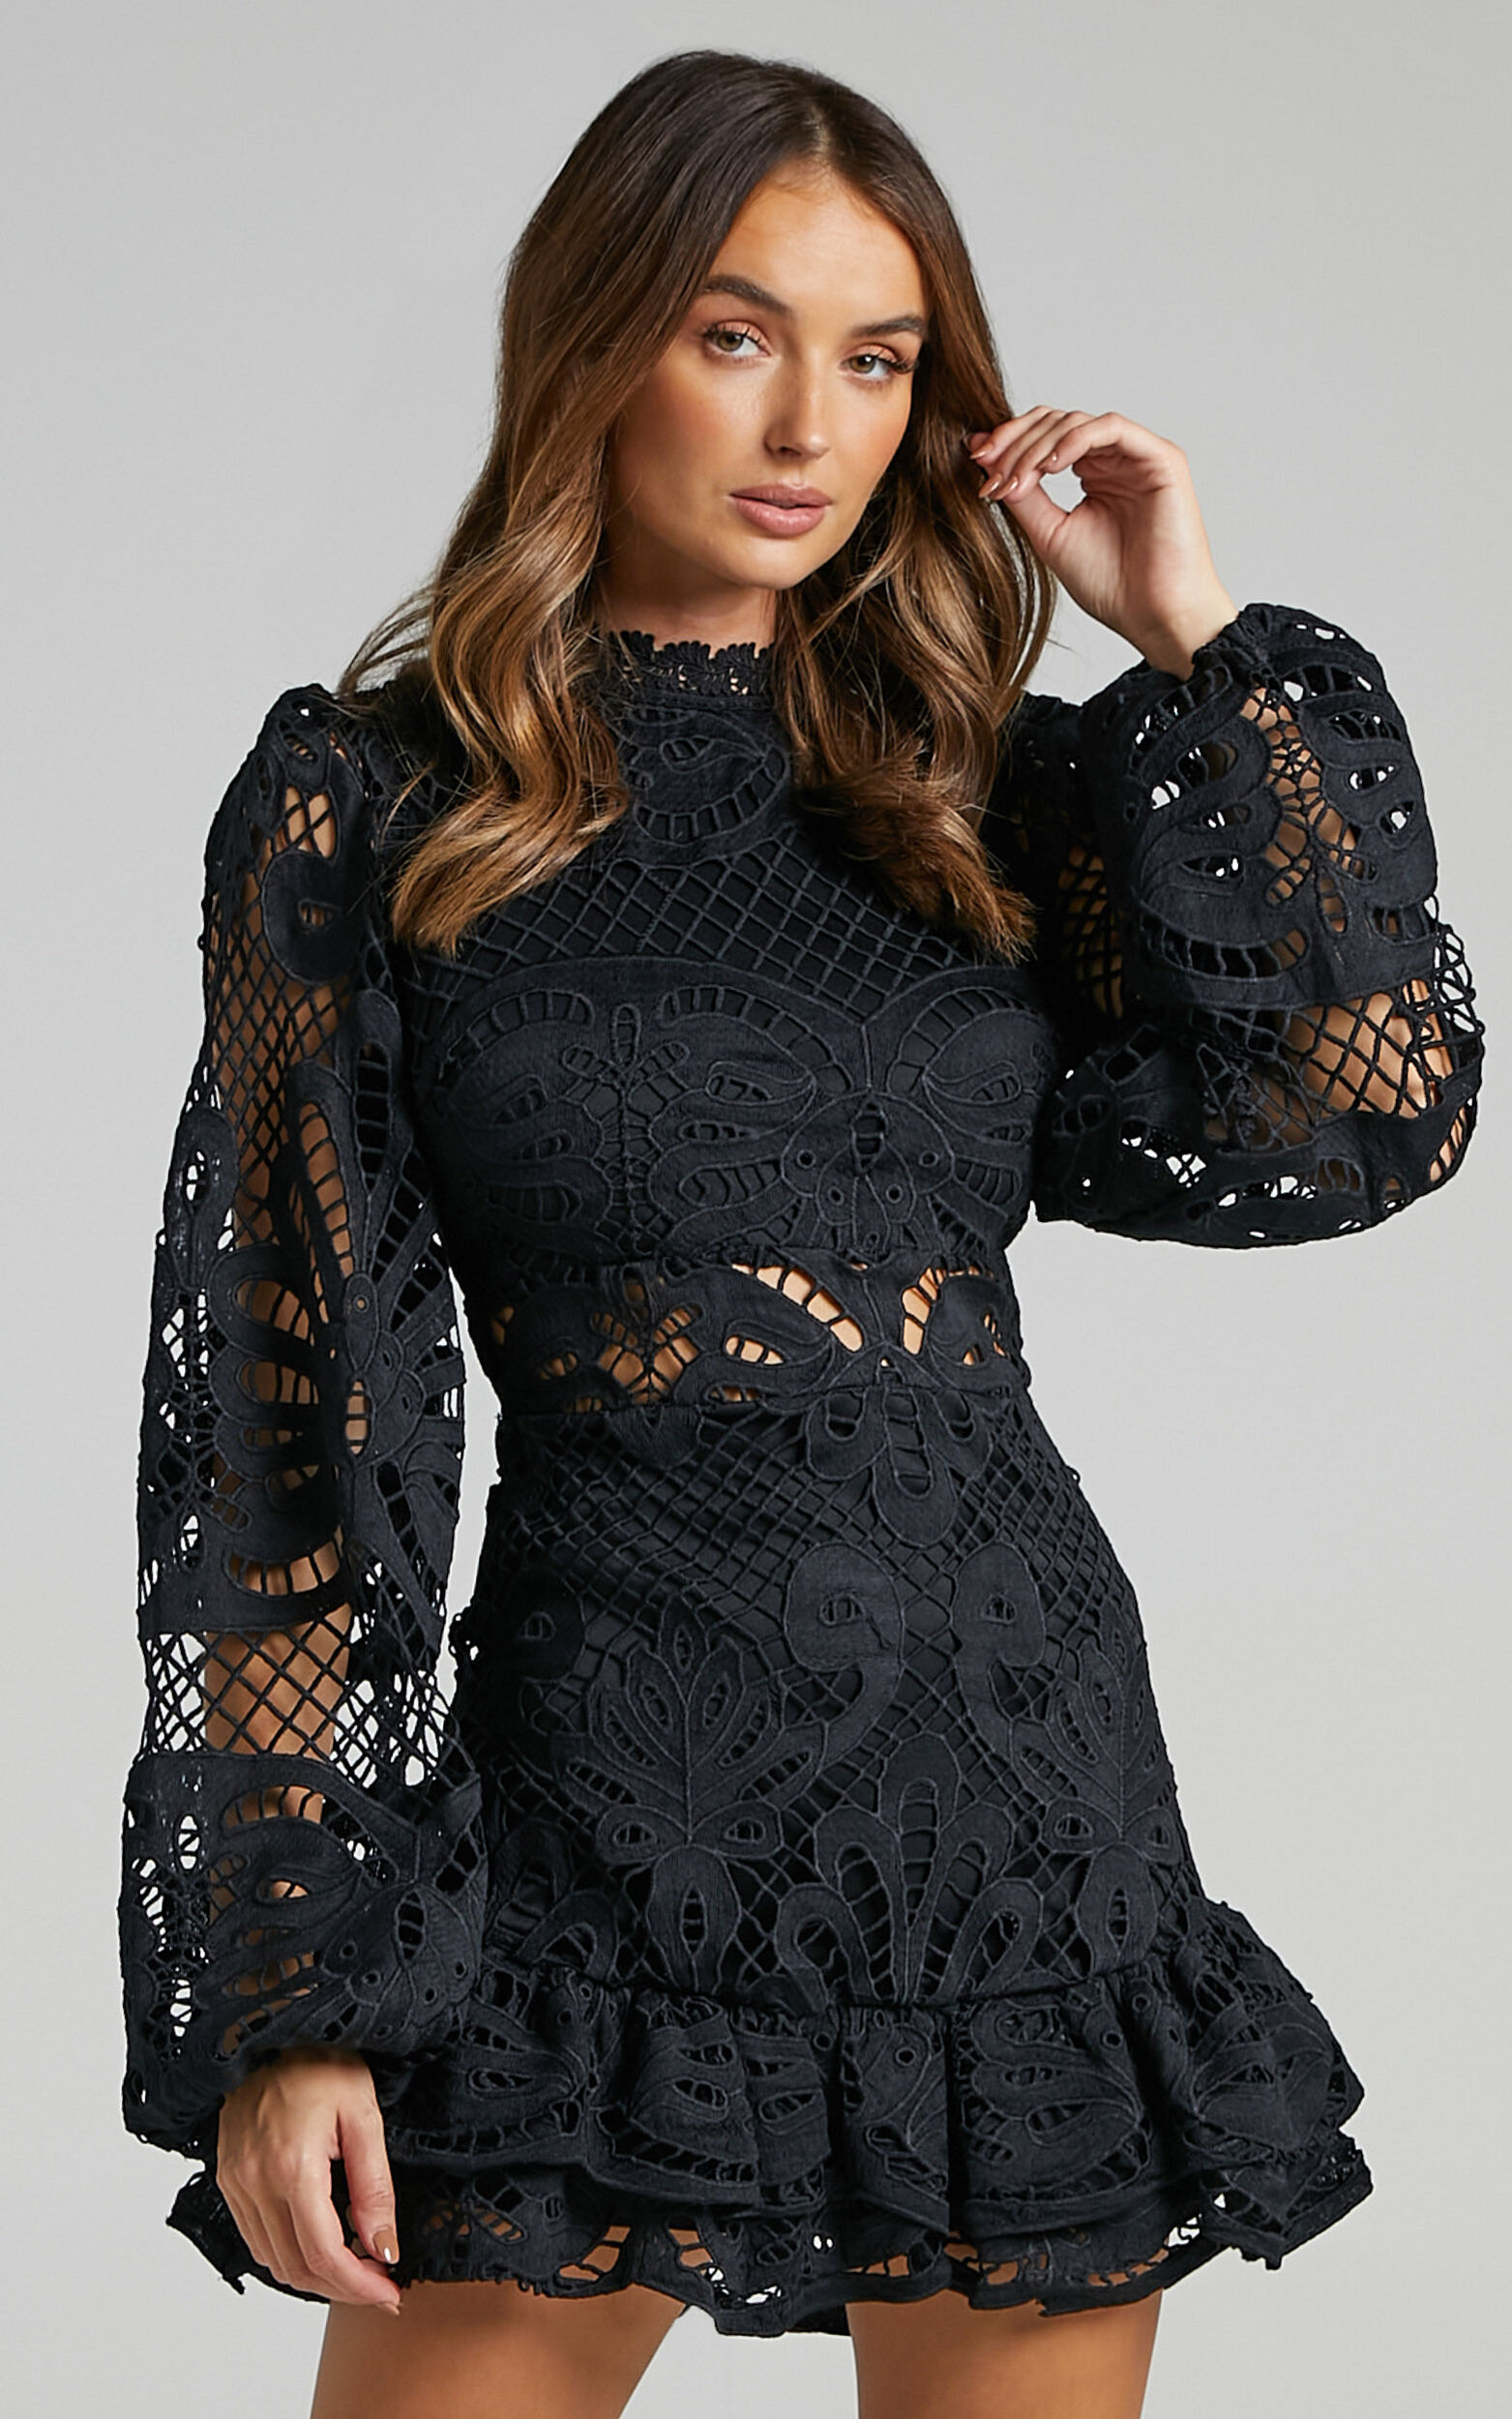 Kiss Me Now Dress in Black Lace - 06, BLK1, super-hi-res image number null